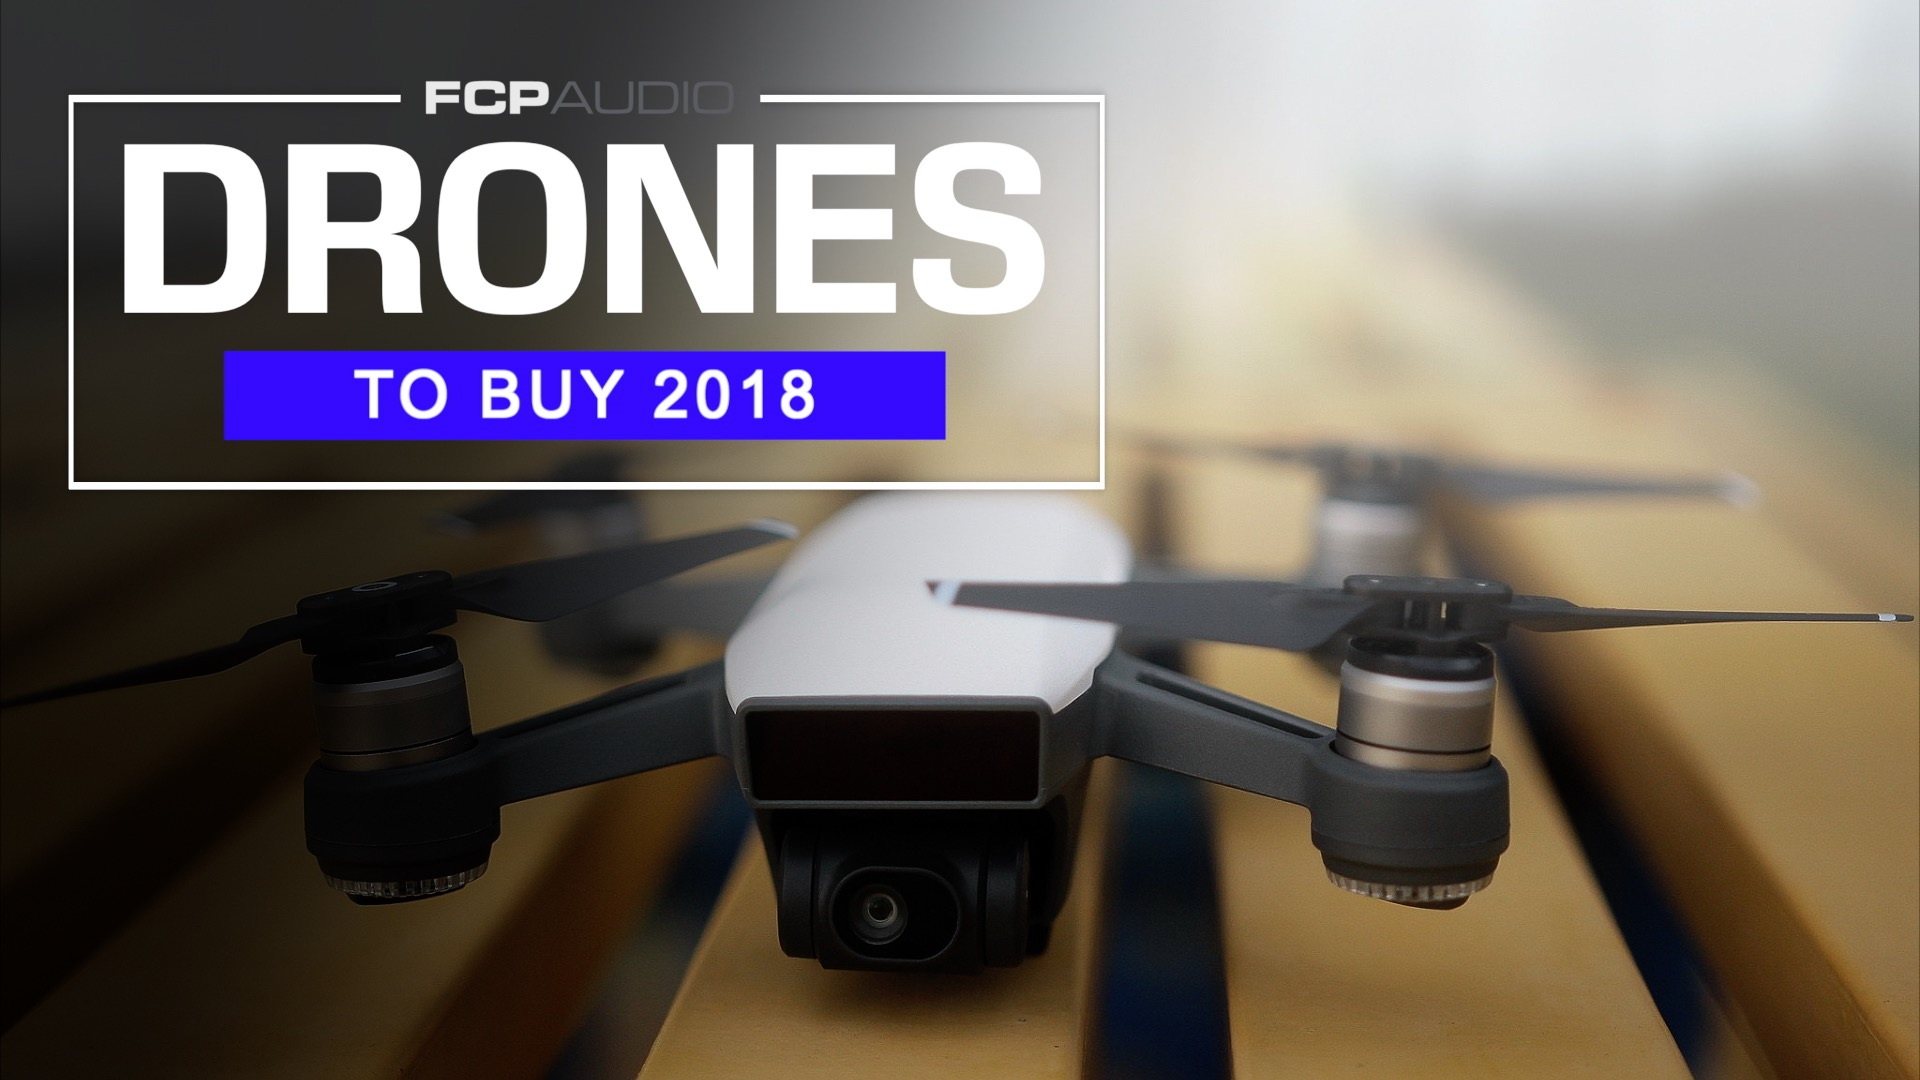 Top Drones to Buy in 2018.